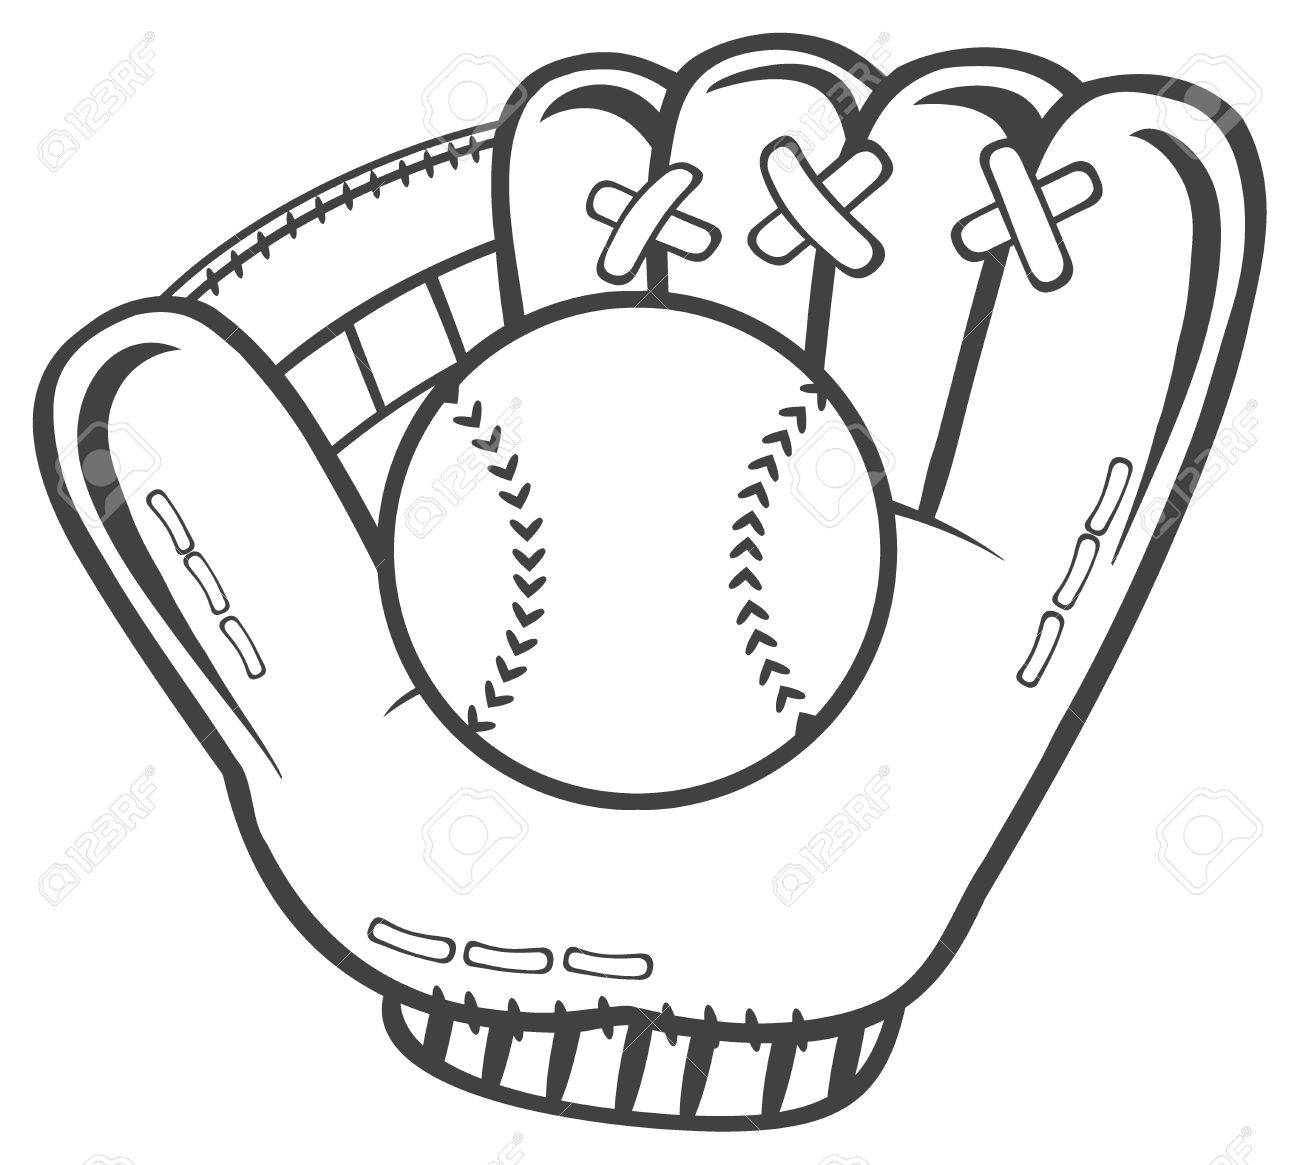 1300x1165 Black And White Baseball Glove And Ball. Illustration Isolated